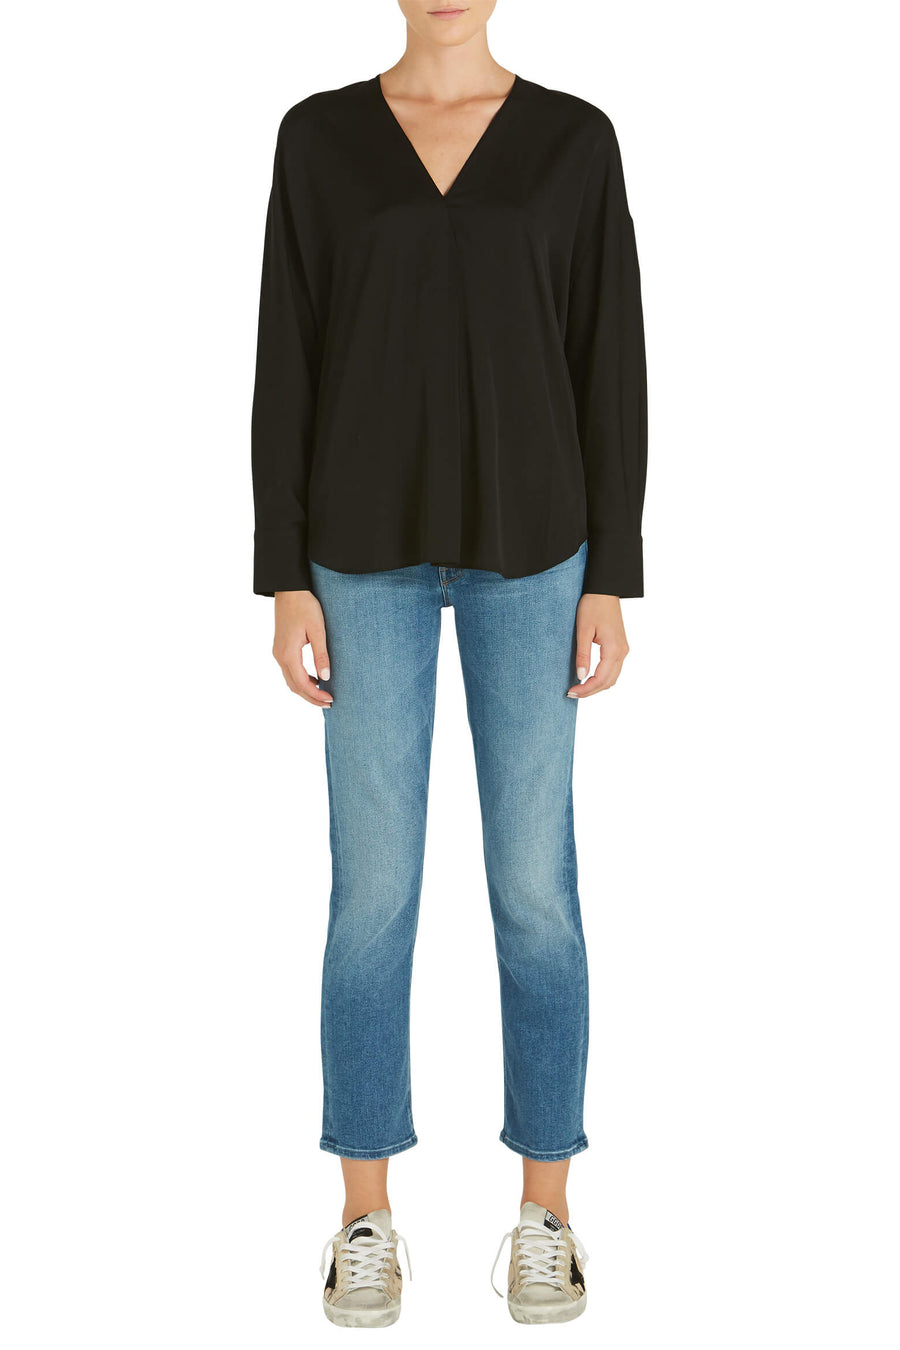 VINCE L/S V-Neck Popover in Black from The New Trend